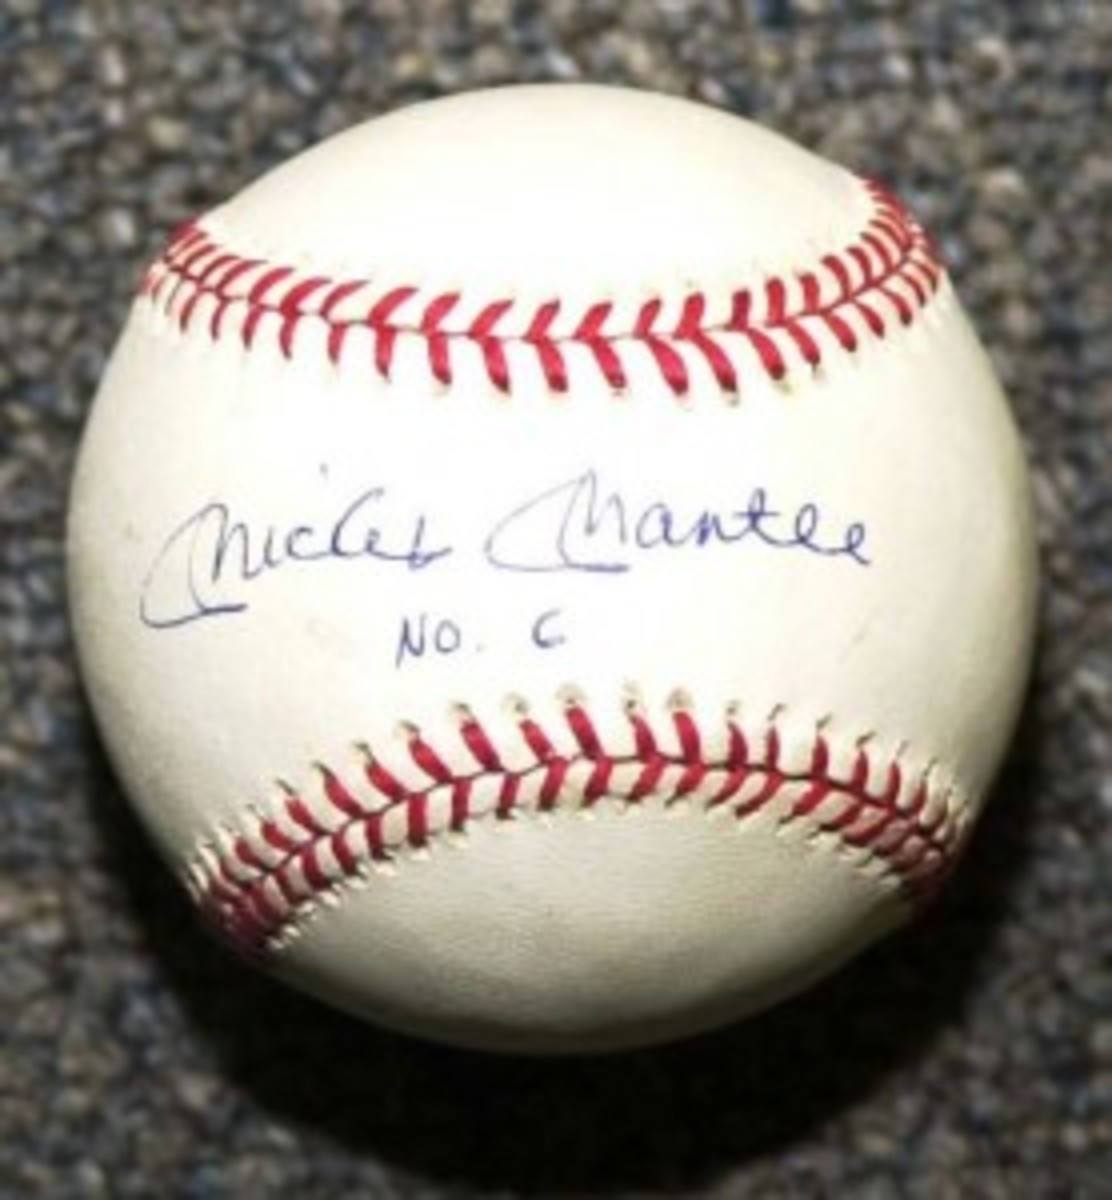 A forged Mantle baseball but this one is signed with No. 6 – an apparent mistake by the forgers that was not a mistake at all.